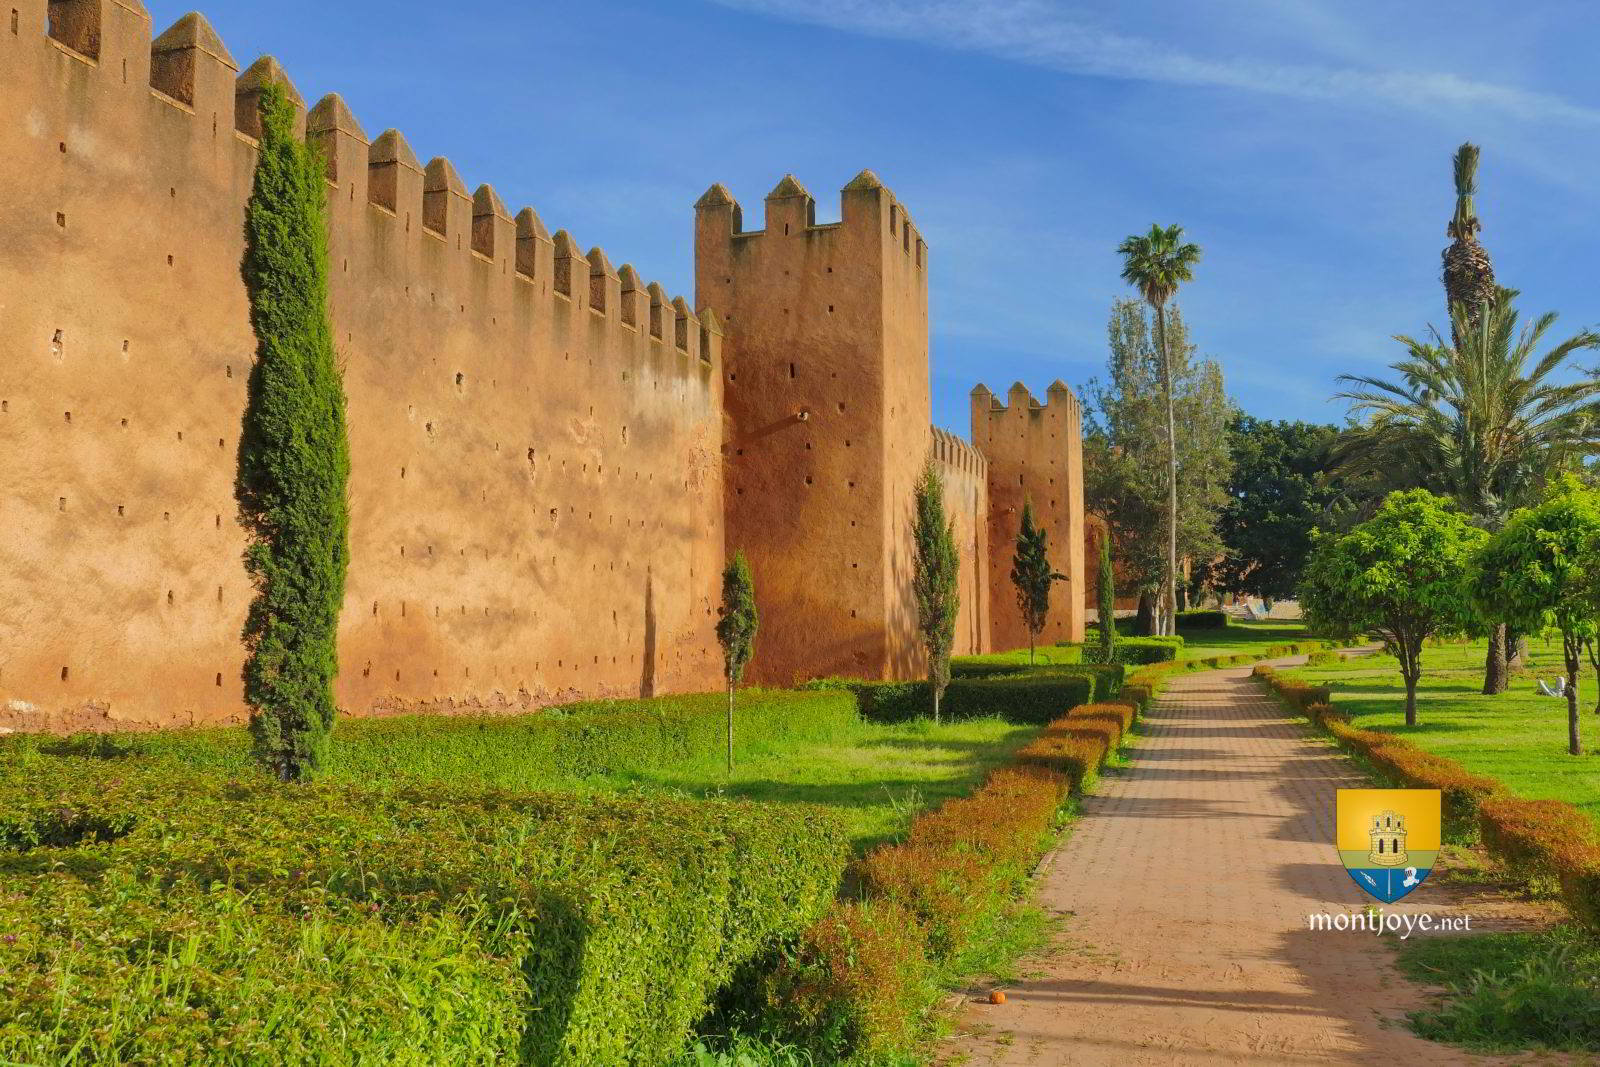 rabat remparts fortifications maroc morocco